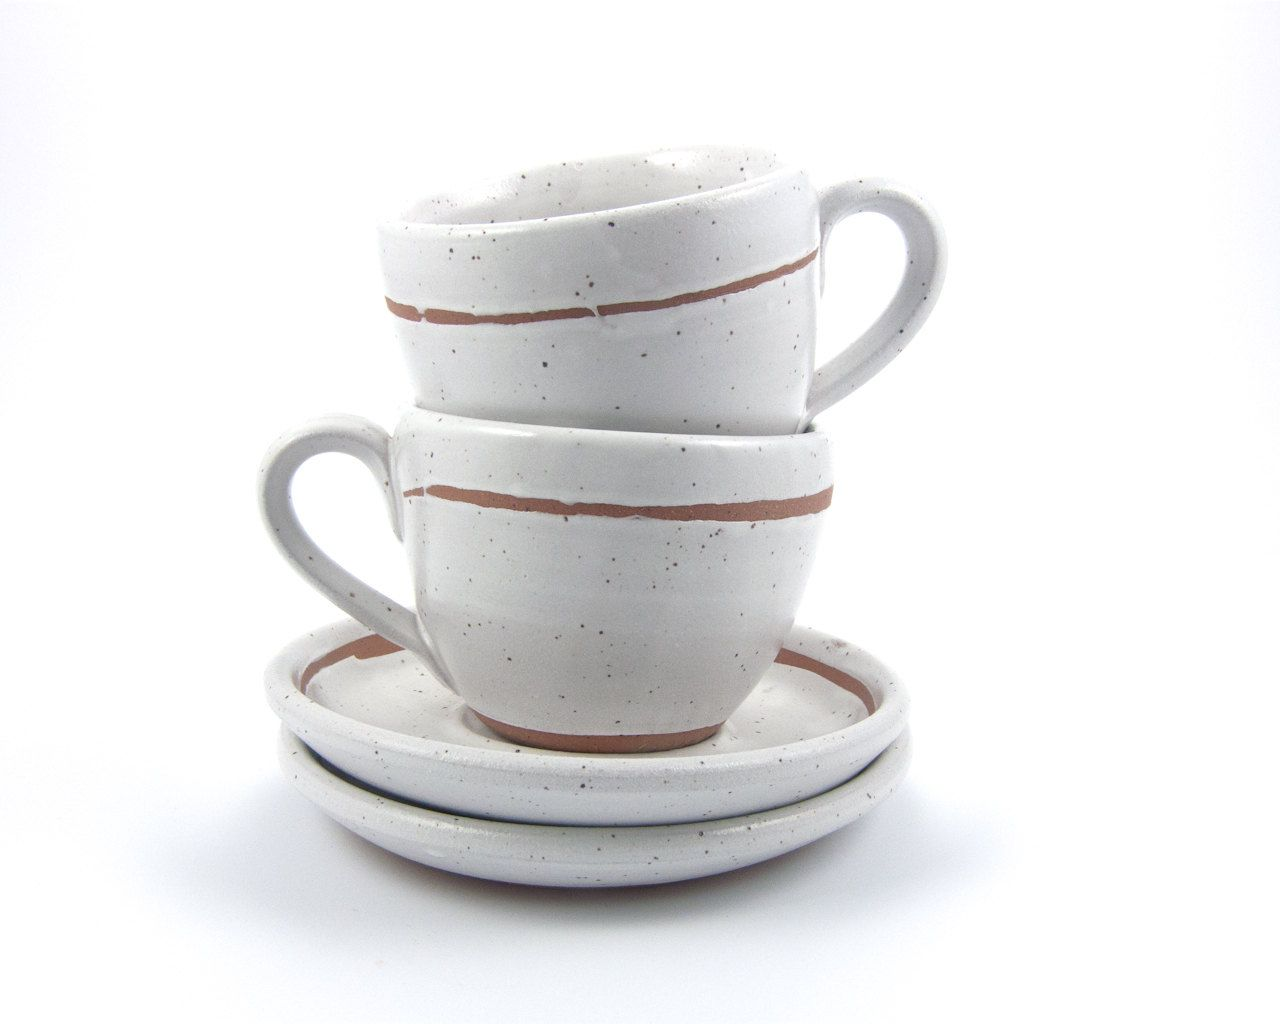 cappuccino cup tea cup and saucer (white with unglazed bands  - cappuccino cup tea cup and saucer (white with unglazed bands) rusticmodern stoneware pottery